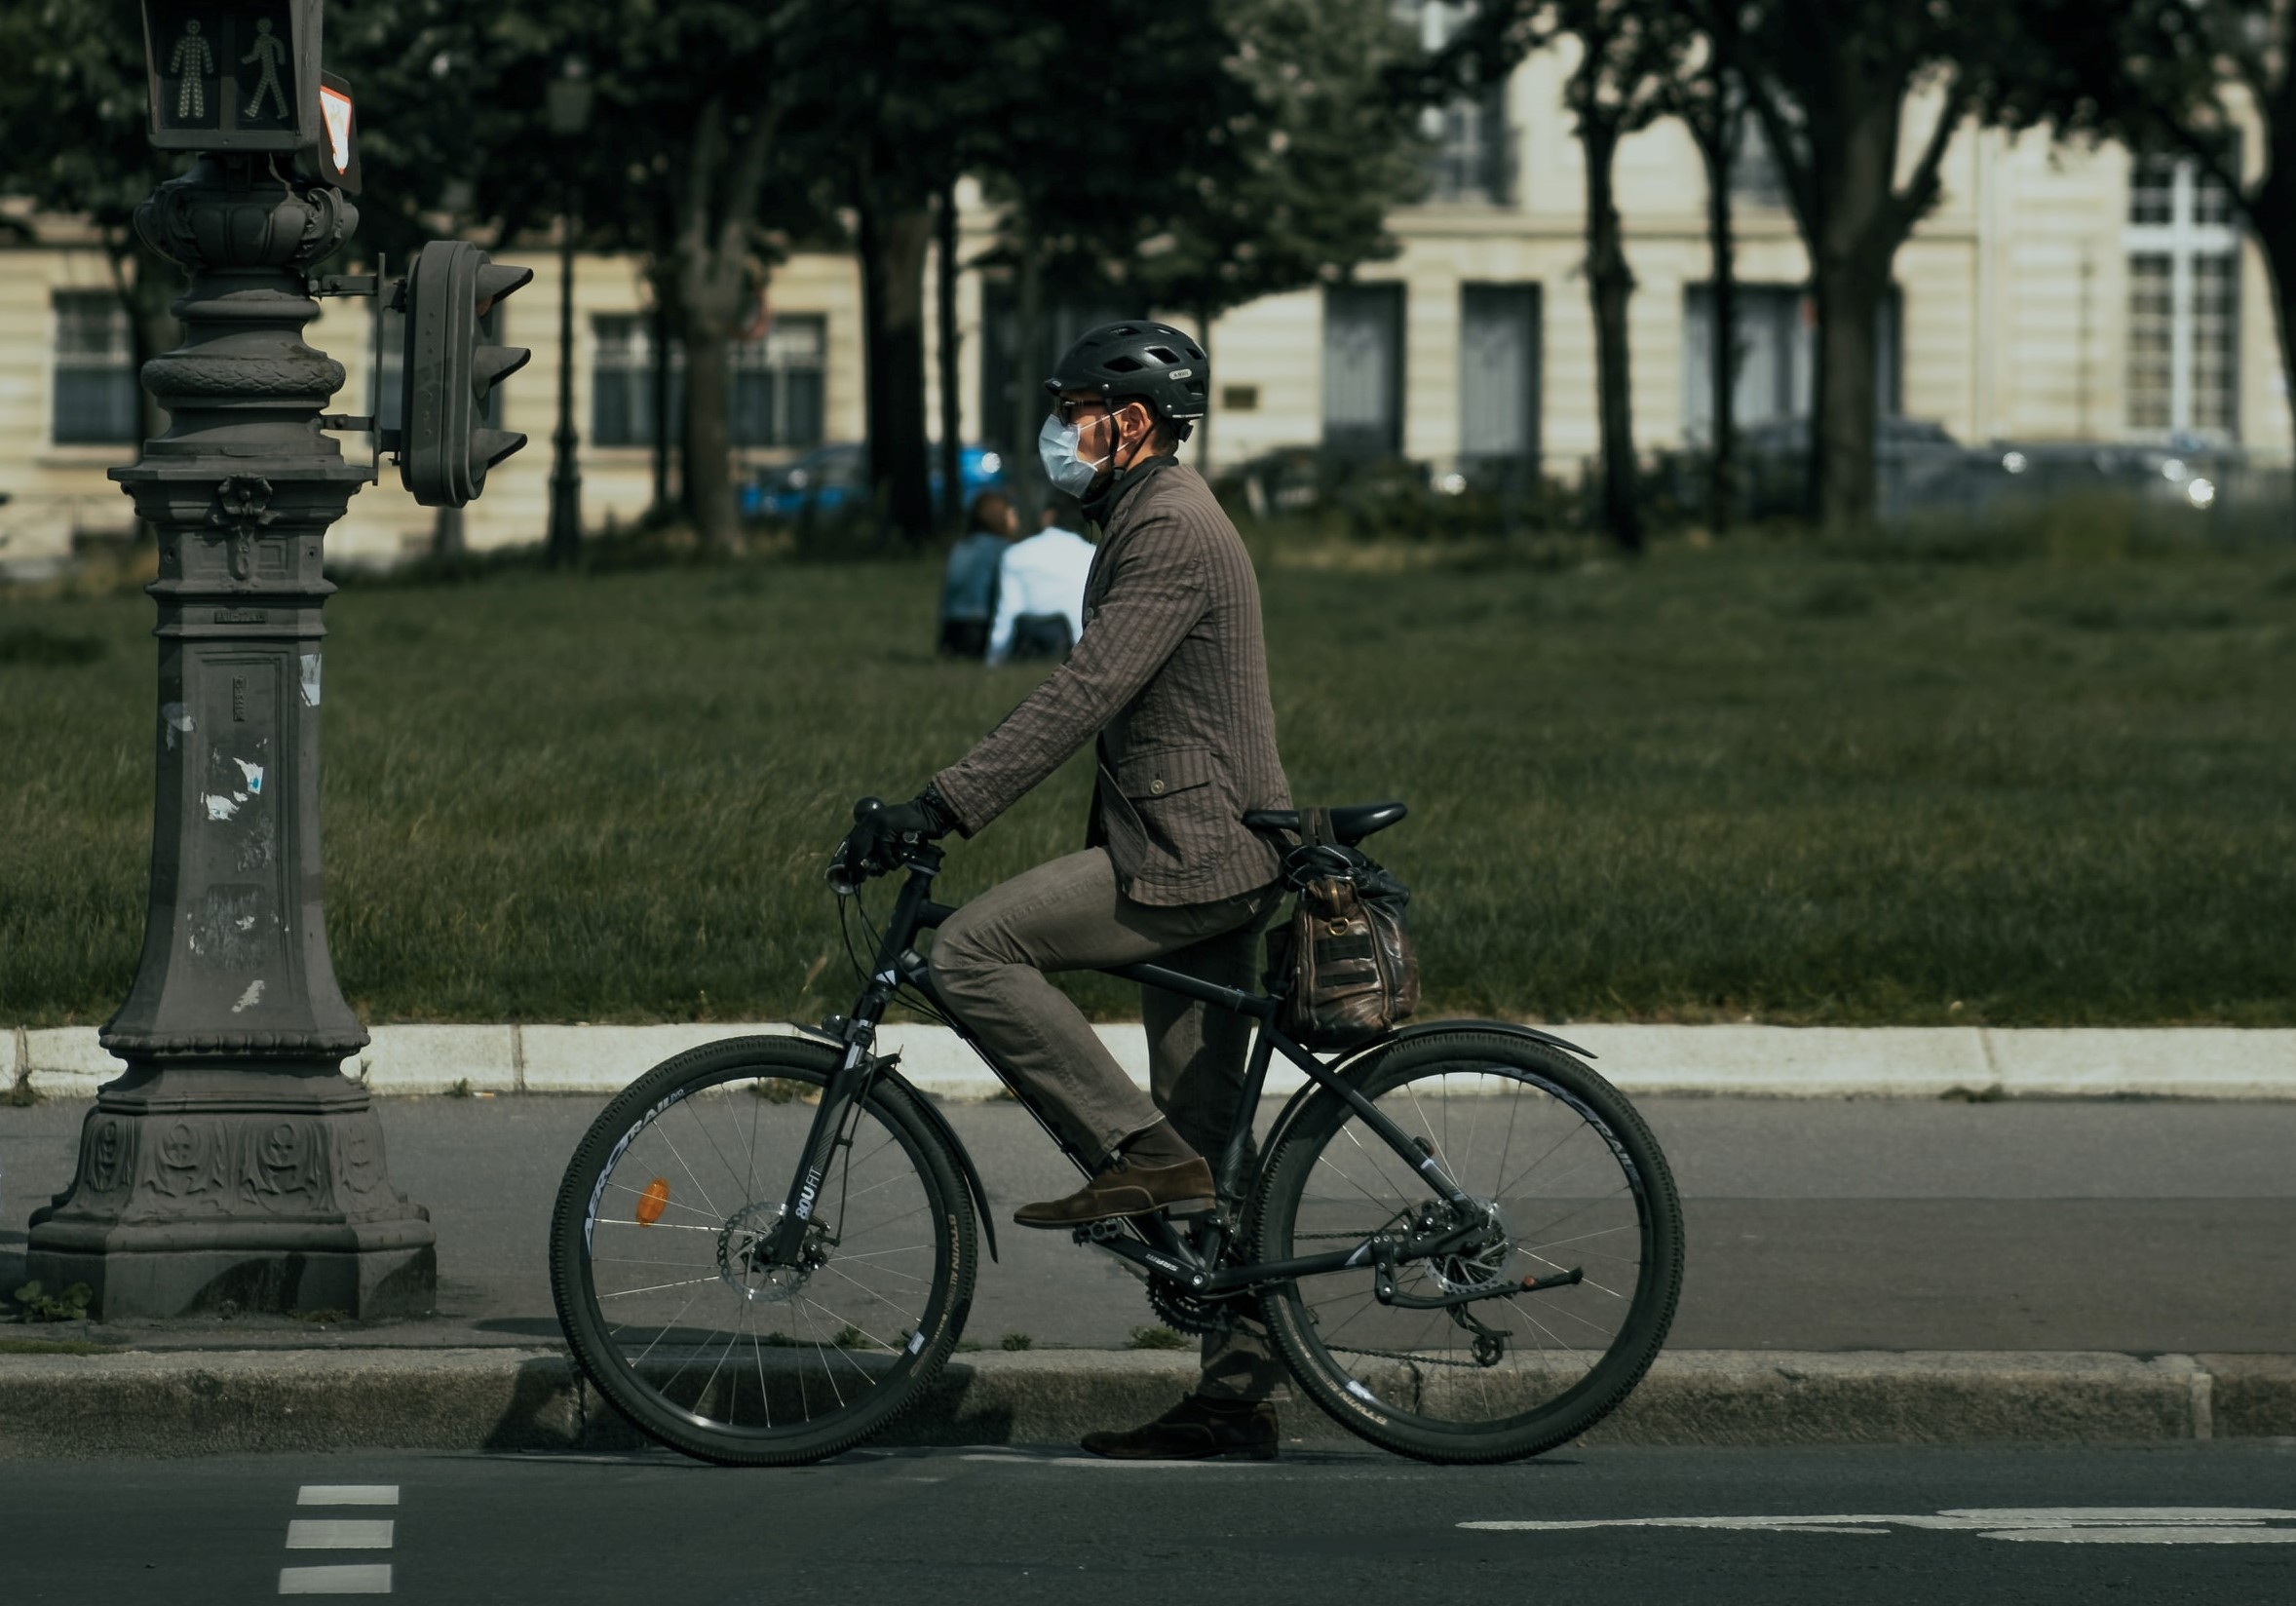 <p>Even prior to the COVID-19 pandemic, bikes proved to be a safe and resilient mode of travel. Photo by Thomas de Luze/Unsplash</p>